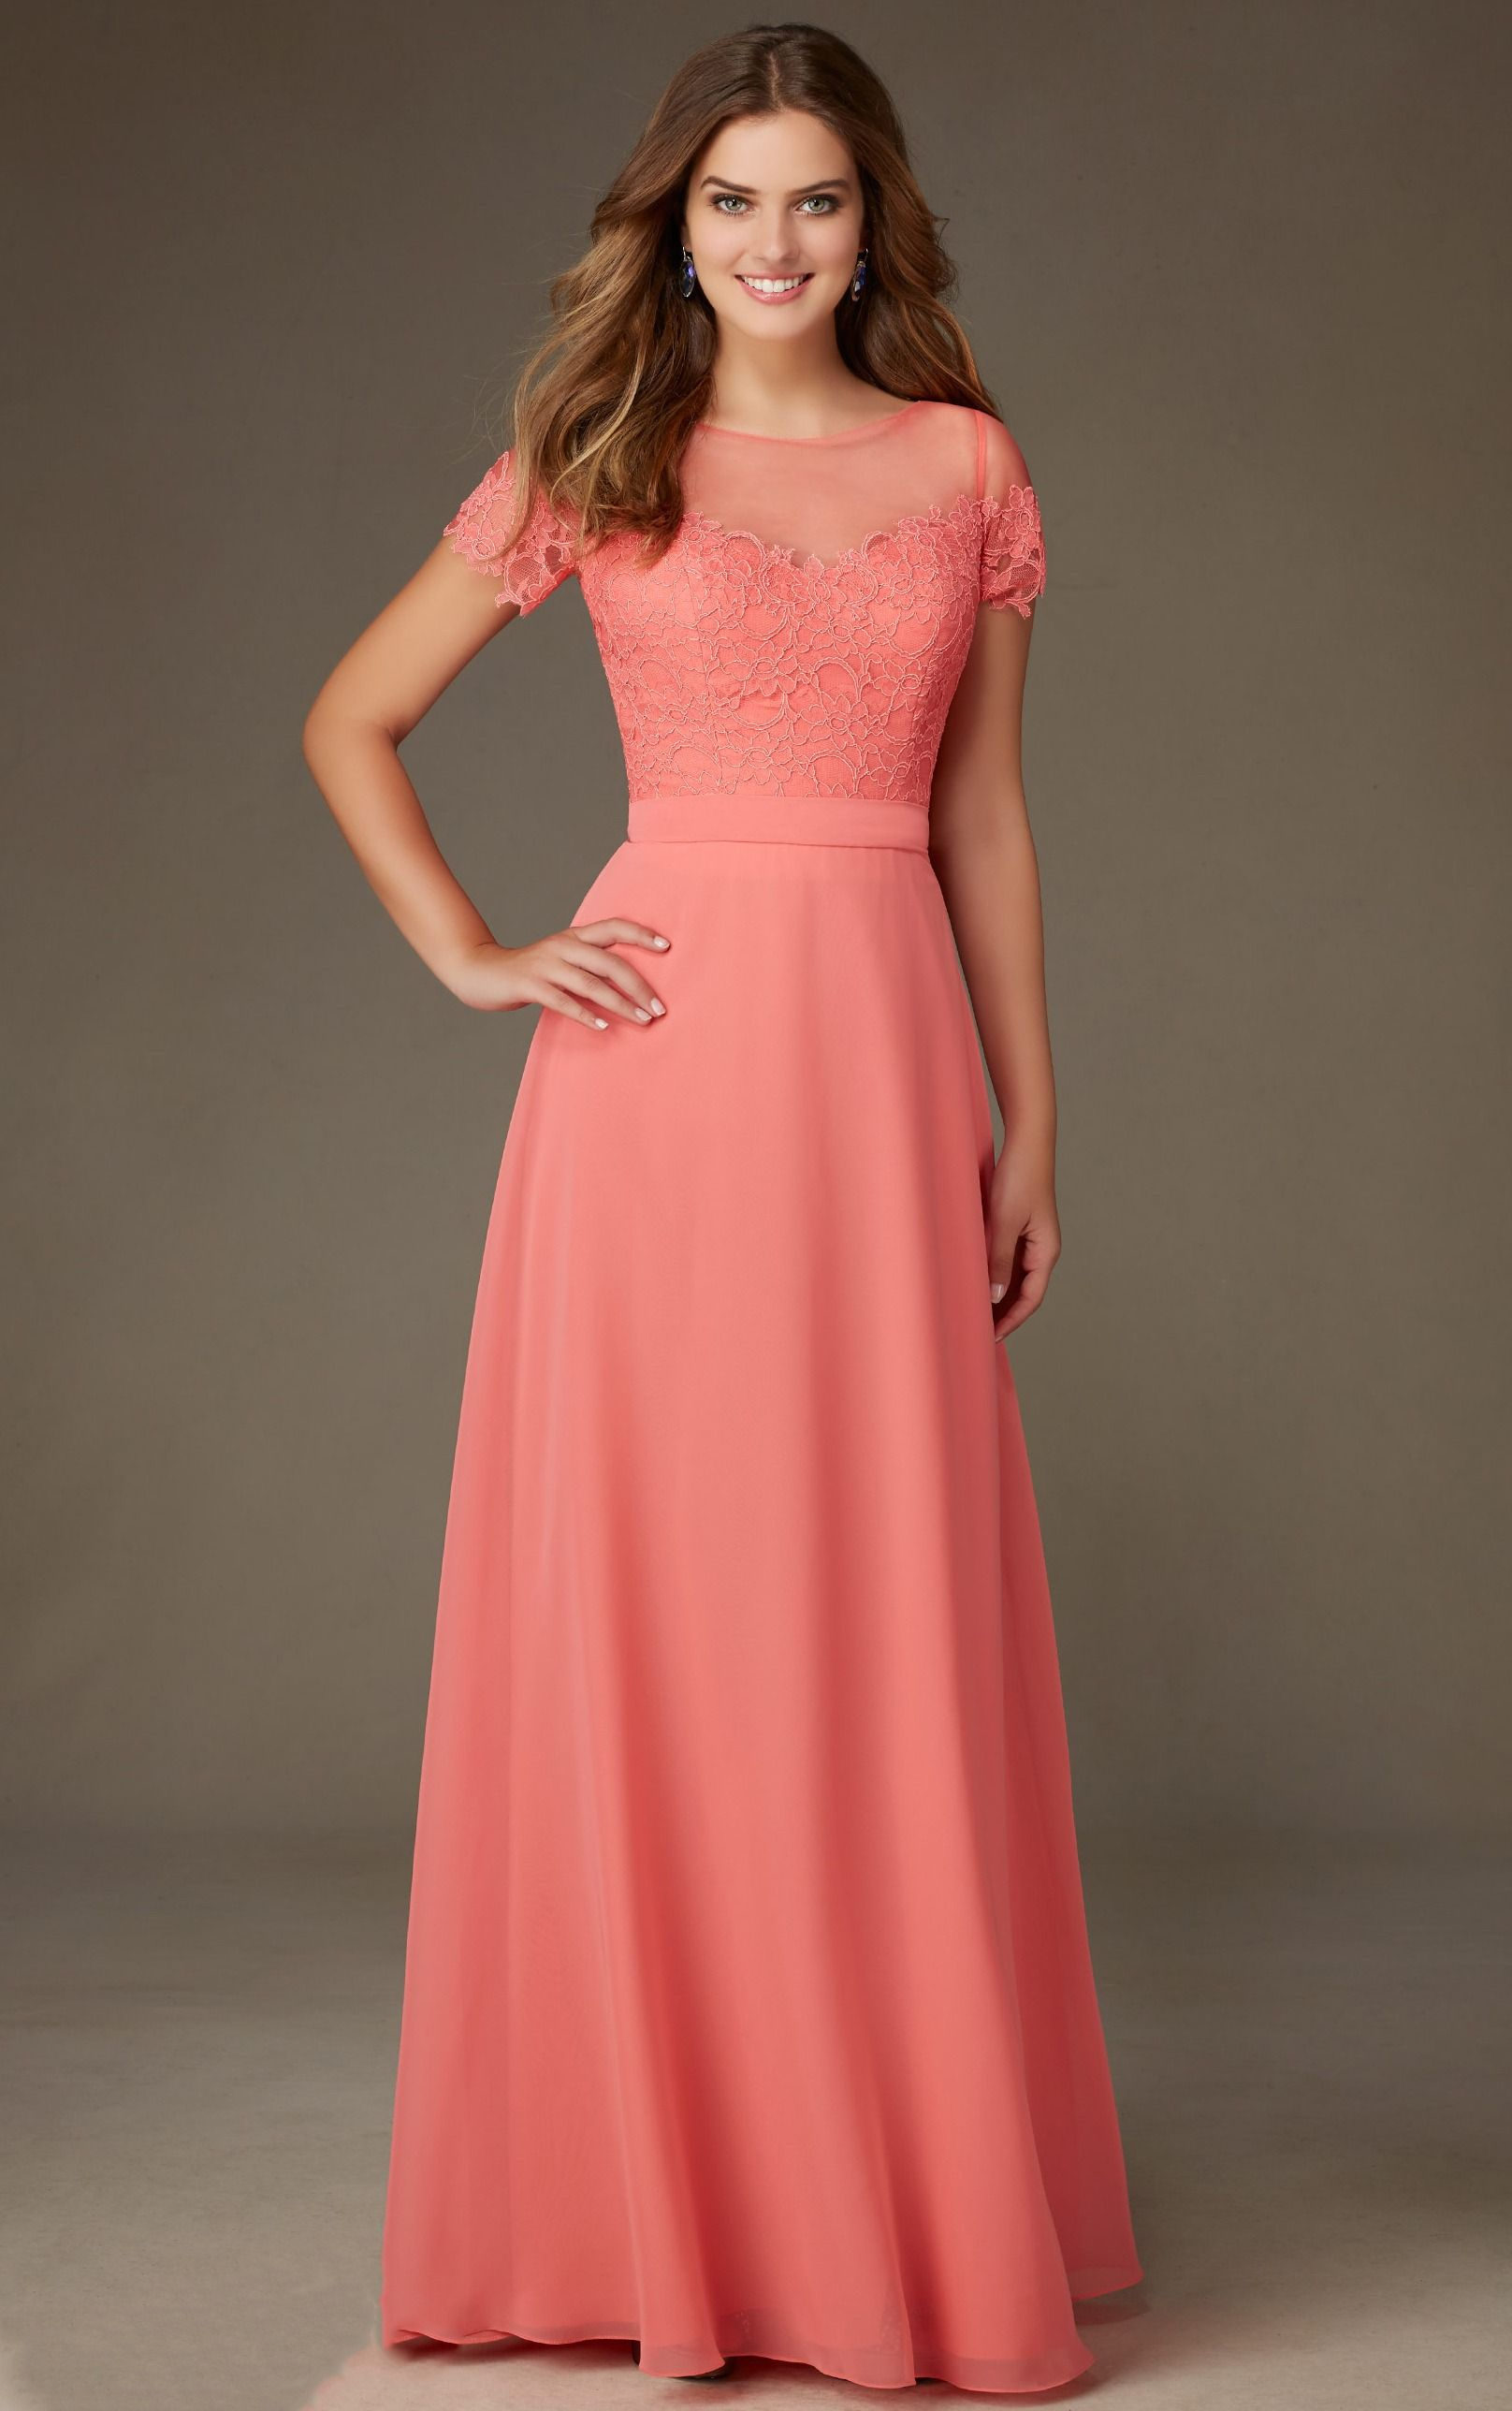 bac620a47466 Coral Lace Bodice Short Sleeved Long A-line Chiffon Bridesmaid Dress ...